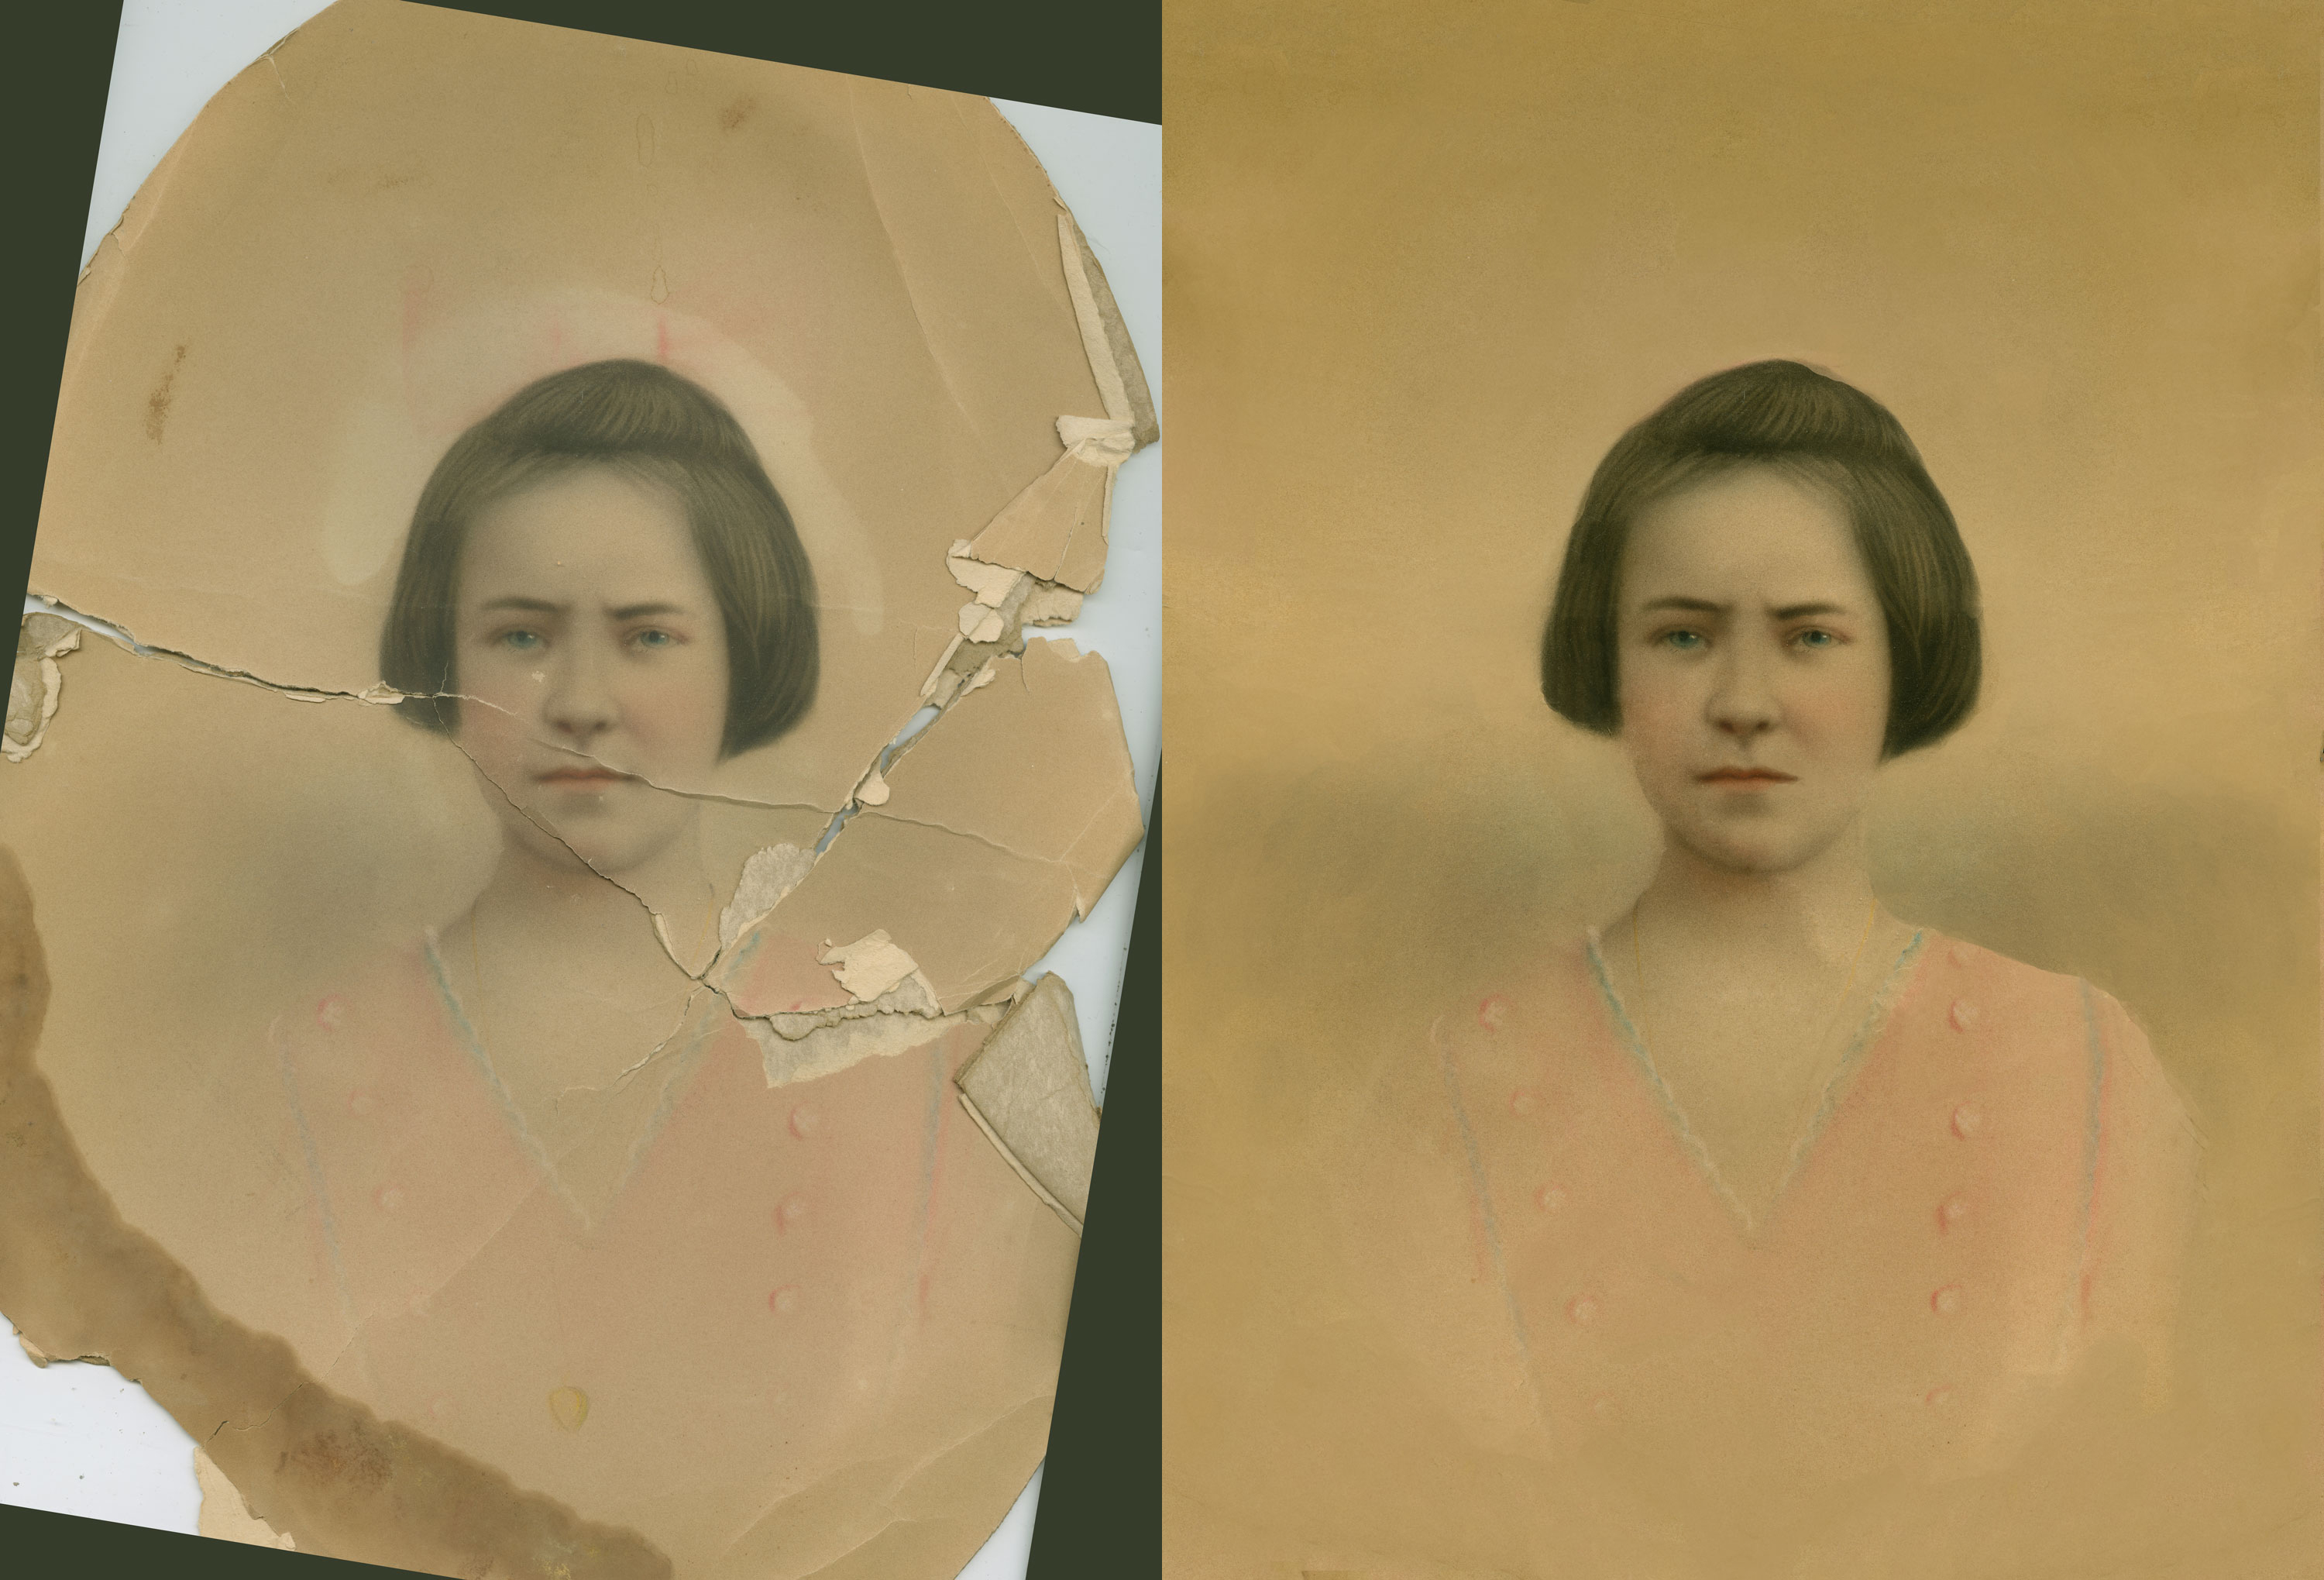 Before and after of a torn photo restoration